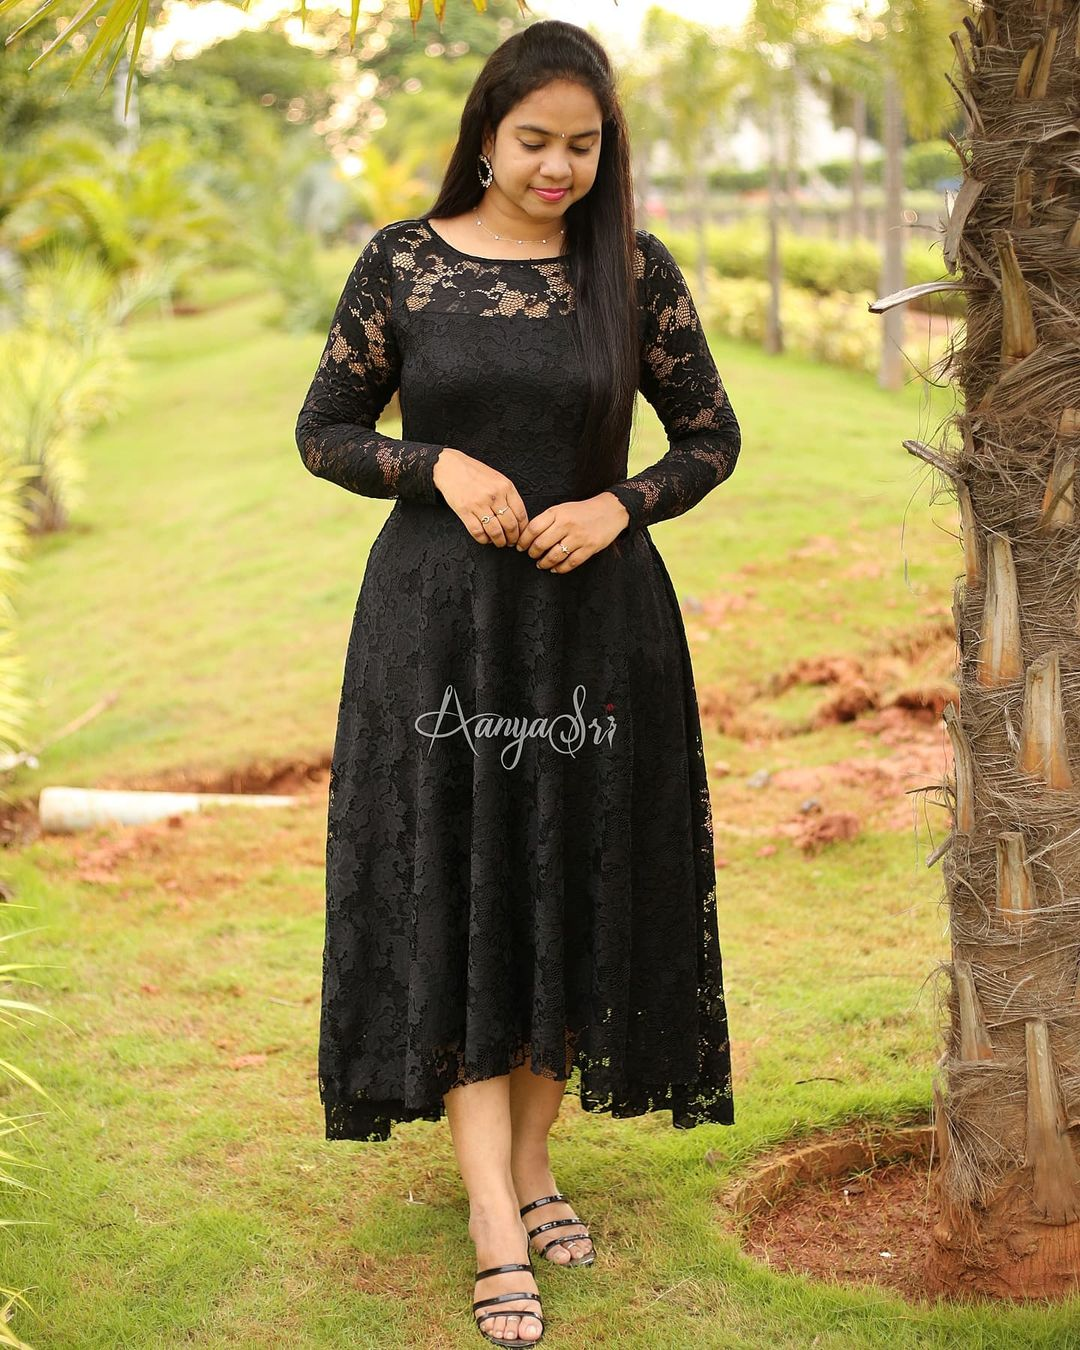 Beautiful Black laced high low dress with sheer yoke and hands .This frock is made of a stretchable high quality lace fabric ! 2021-09-09